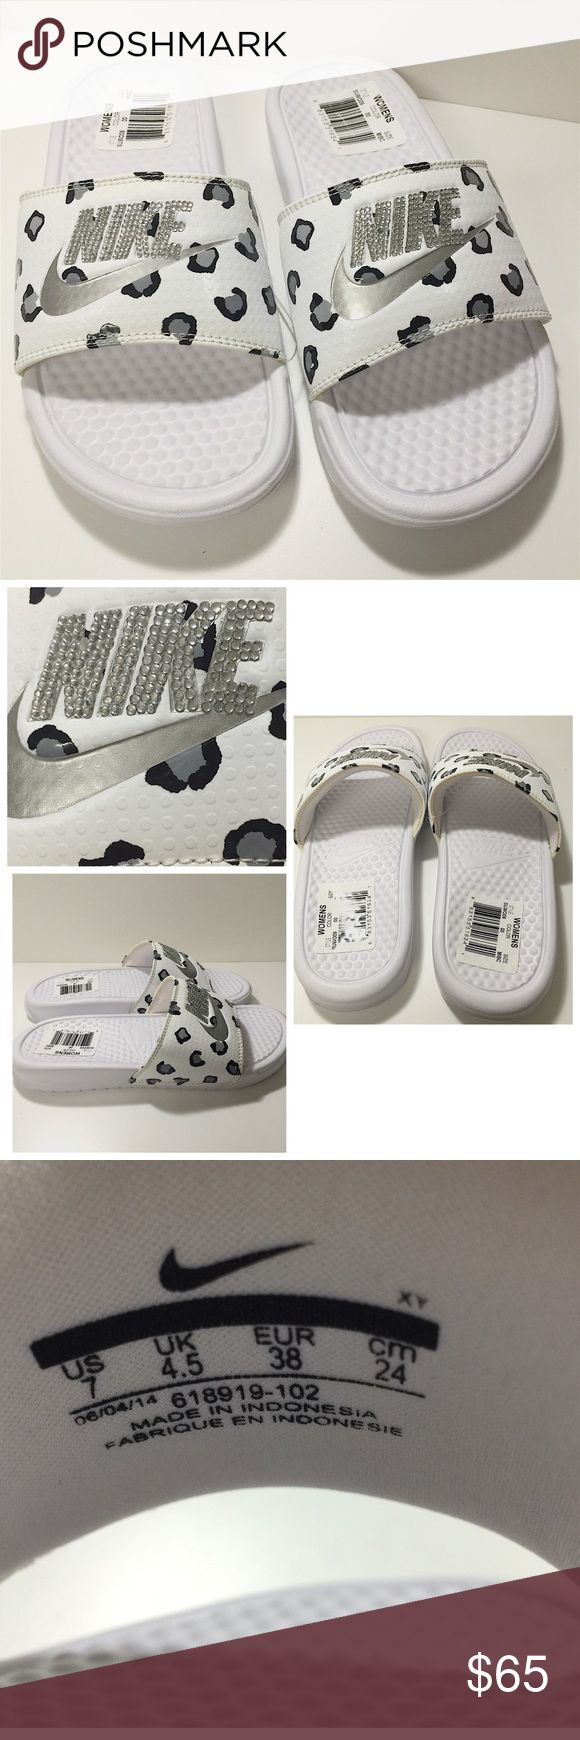 Blinged out custom Nike slides Blinged out custom Nike women's slides. White with black and silver cheetah print. Silver crystals, silver swoosh with no crystals. Never been worn, nwt. Size 7. No missing jewels! Nike Shoes Sandals